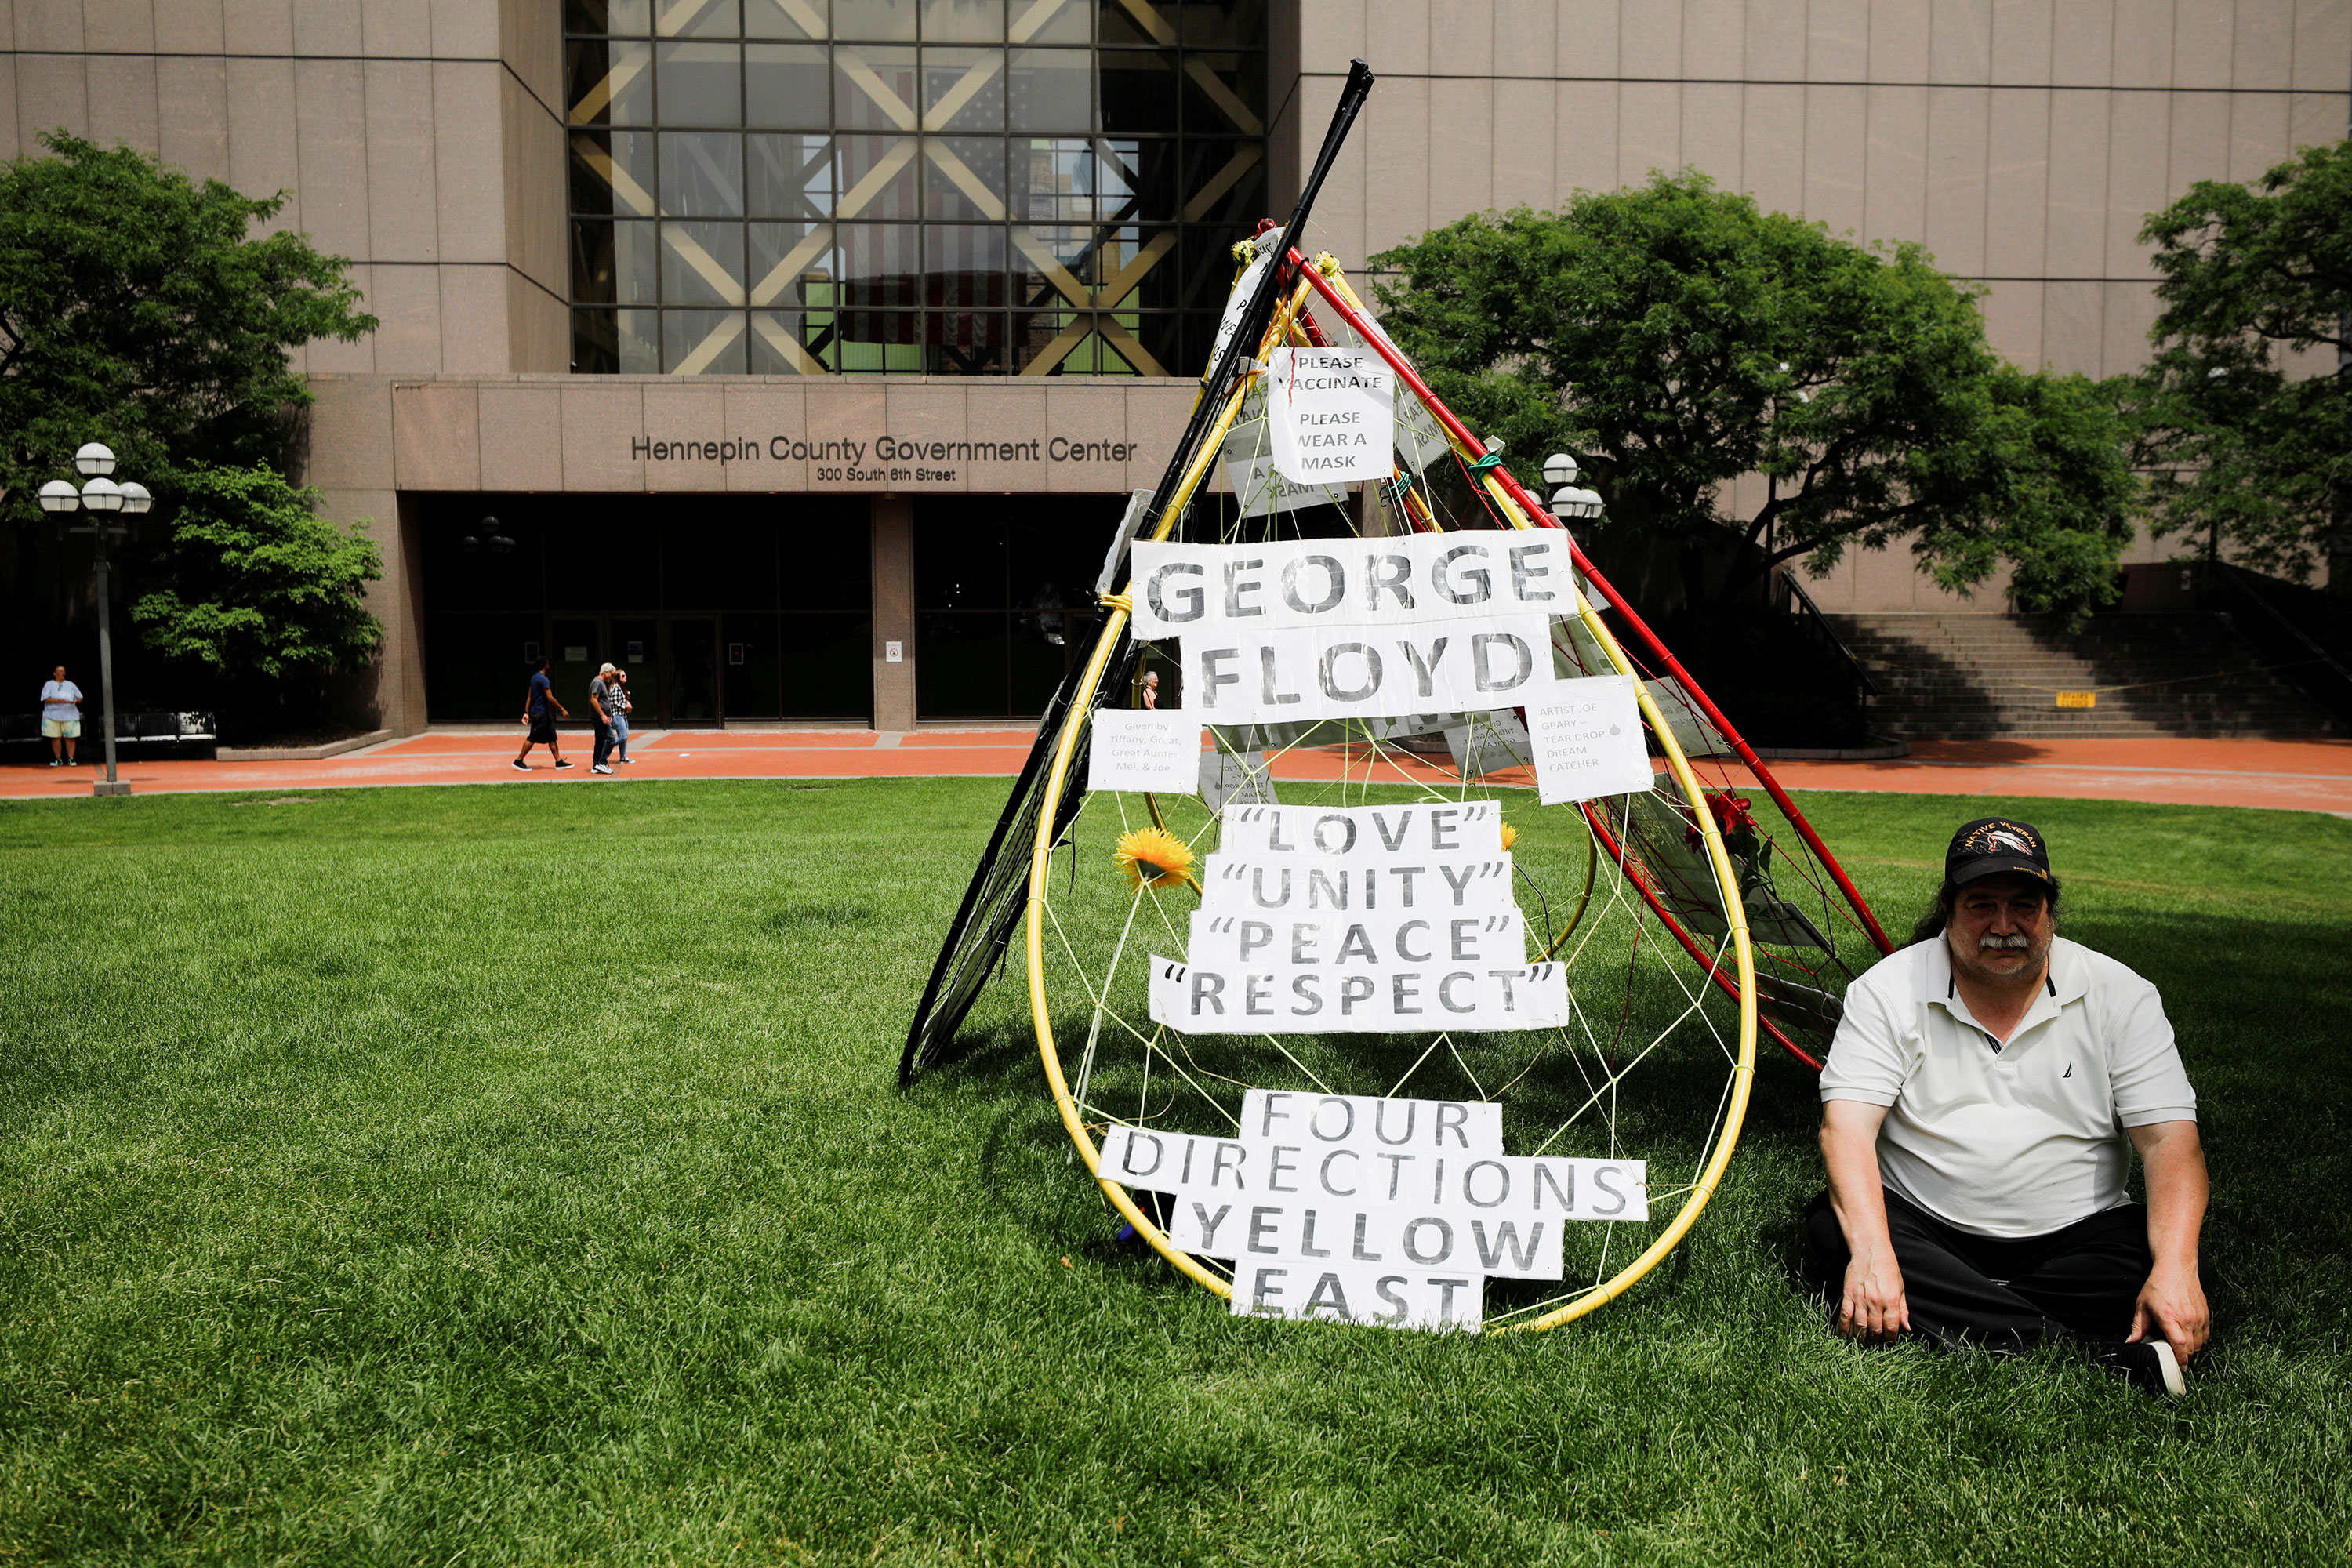 A person waits outside Hennepin County Government Center ahead of Chauvin's sentencing.